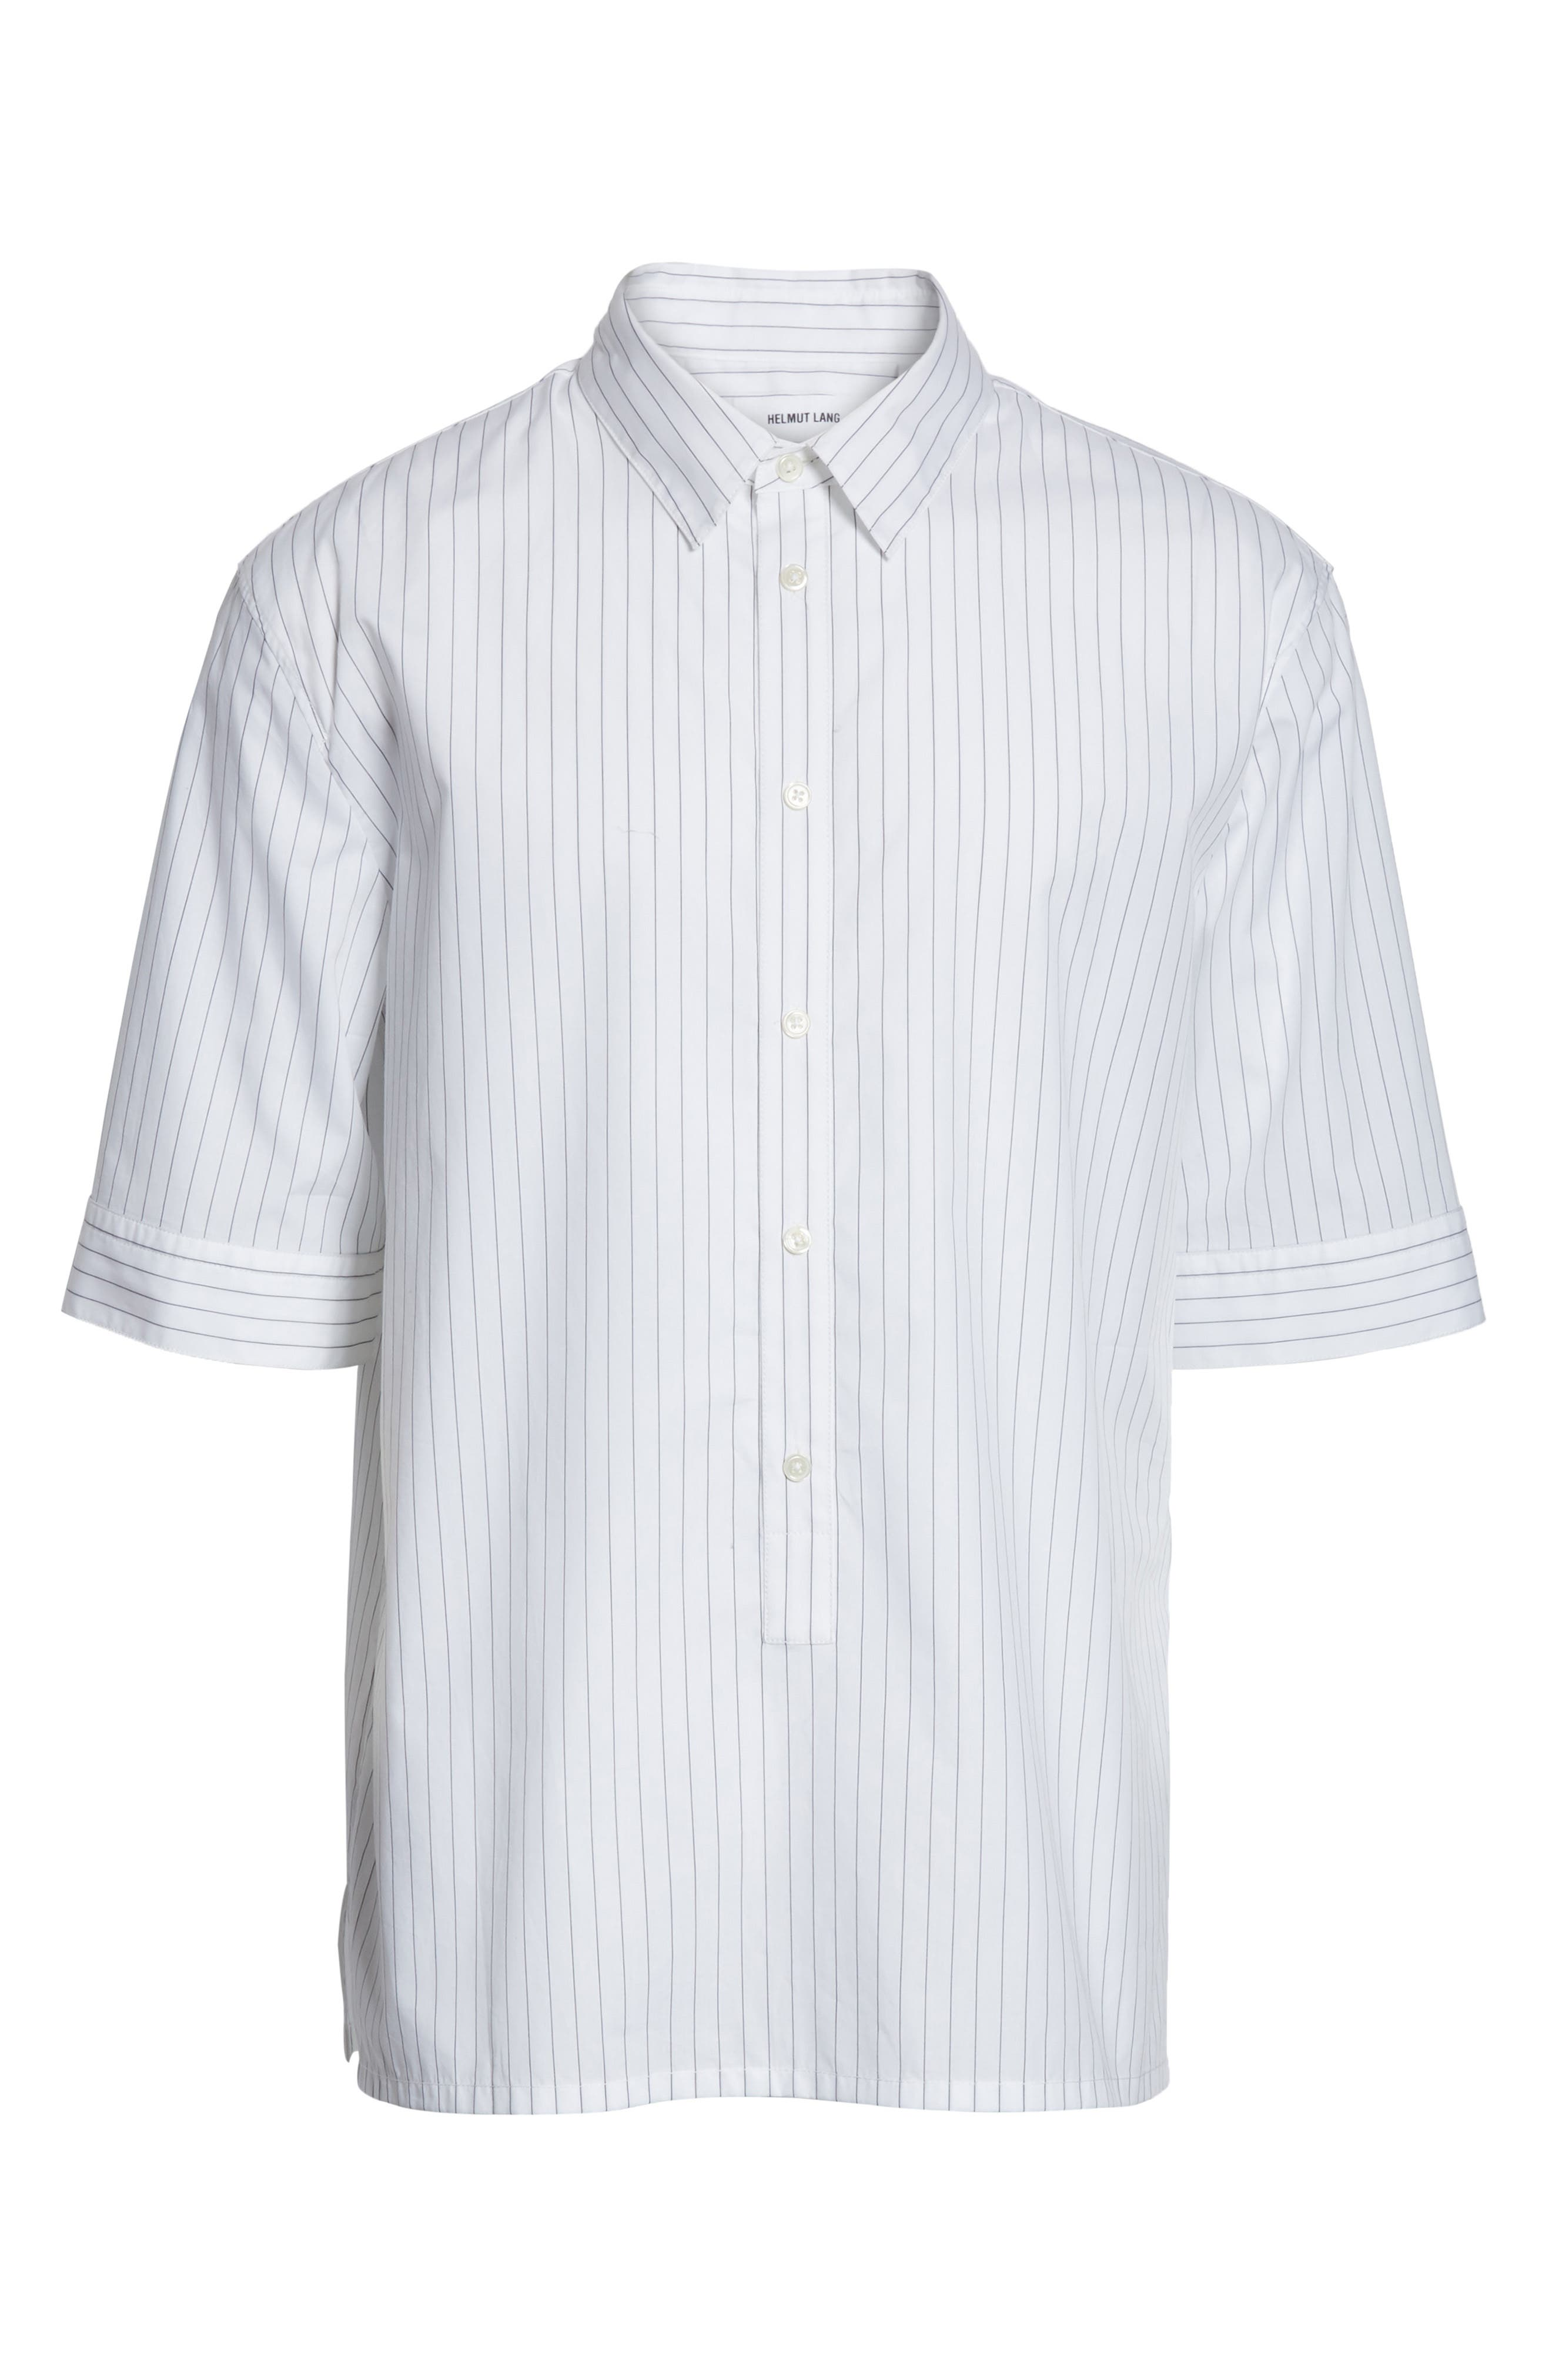 Elongated Placket Stripe Woven Shirt,                             Alternate thumbnail 6, color,                             White